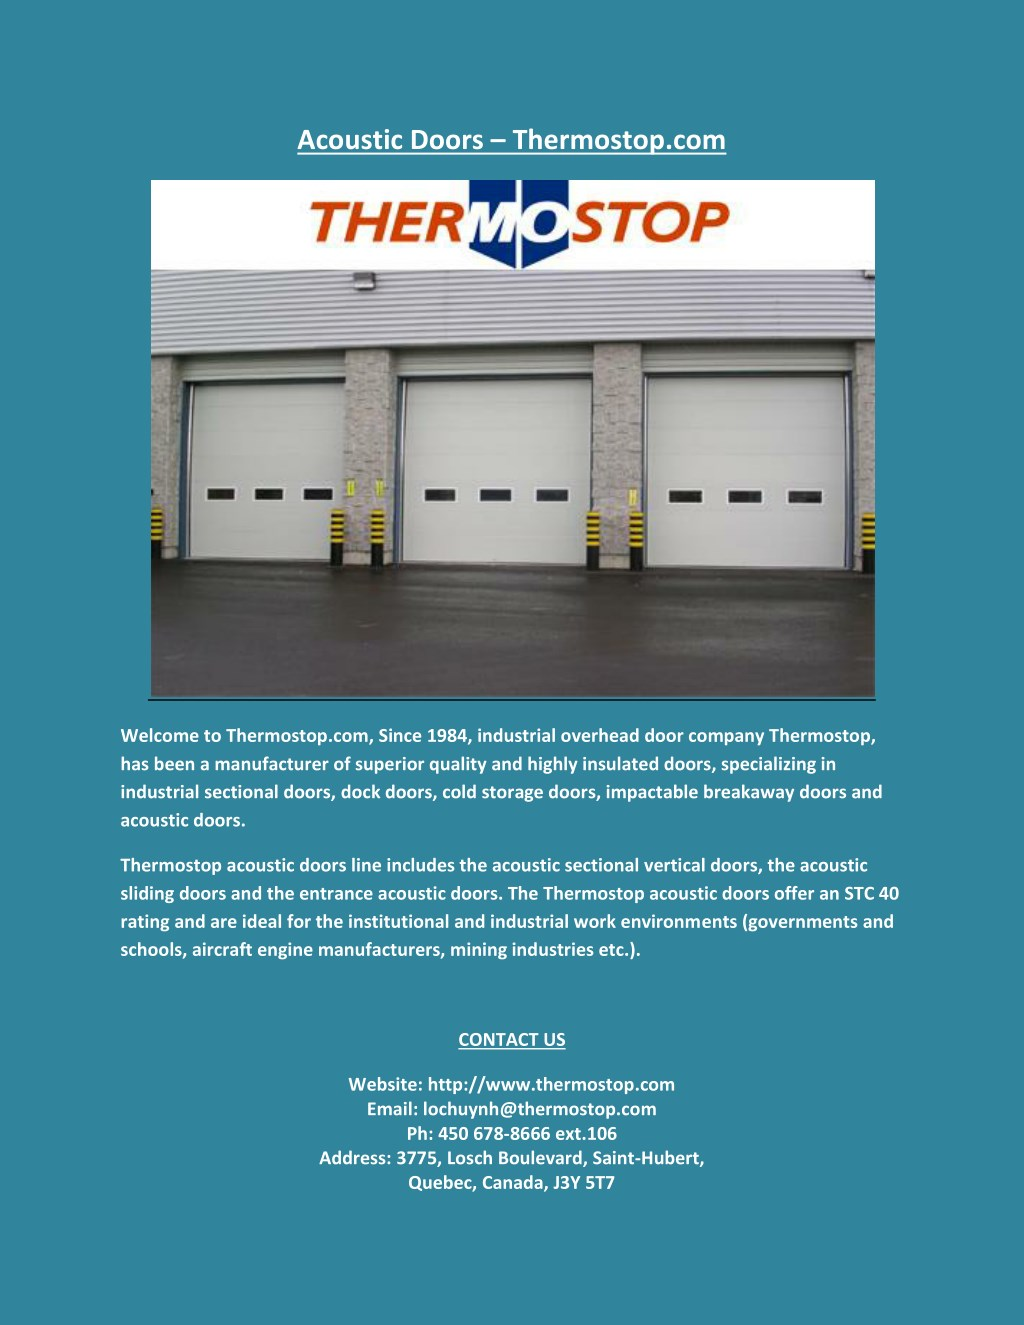 Ppt Acoustic Doors Powerpoint Presentation Free Download Id 7615737